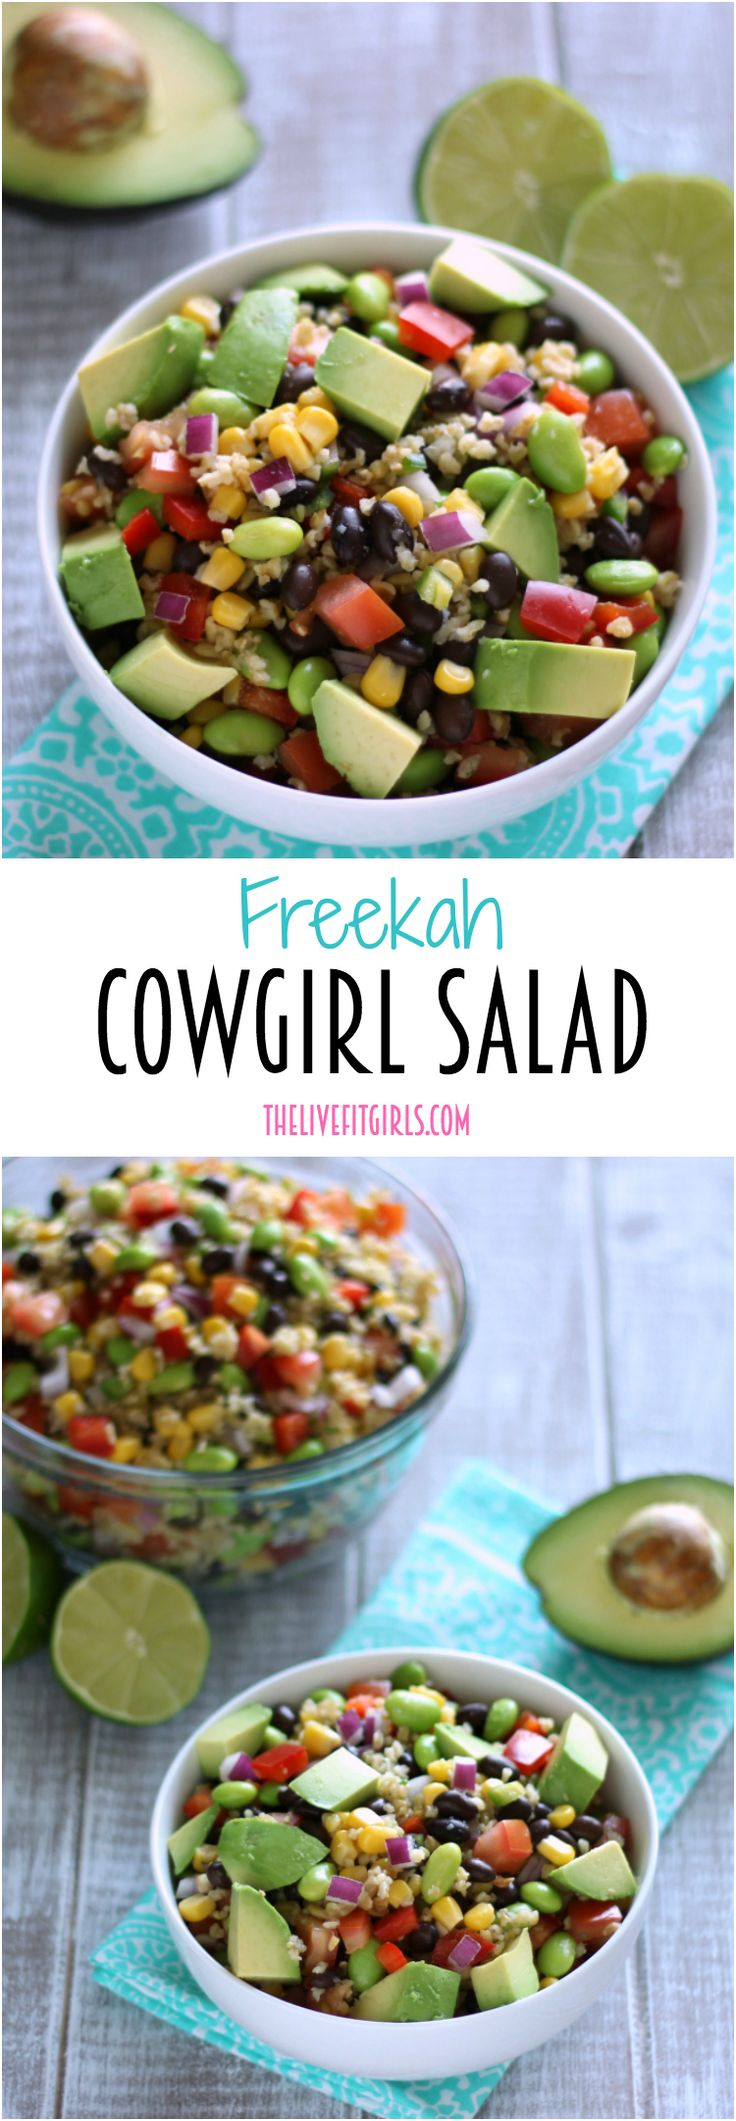 This remake of Cowboy Salad amps up the protein with freekah grains, edamame, and black beans. This colorful salad is the perfect side dish OR mail course!